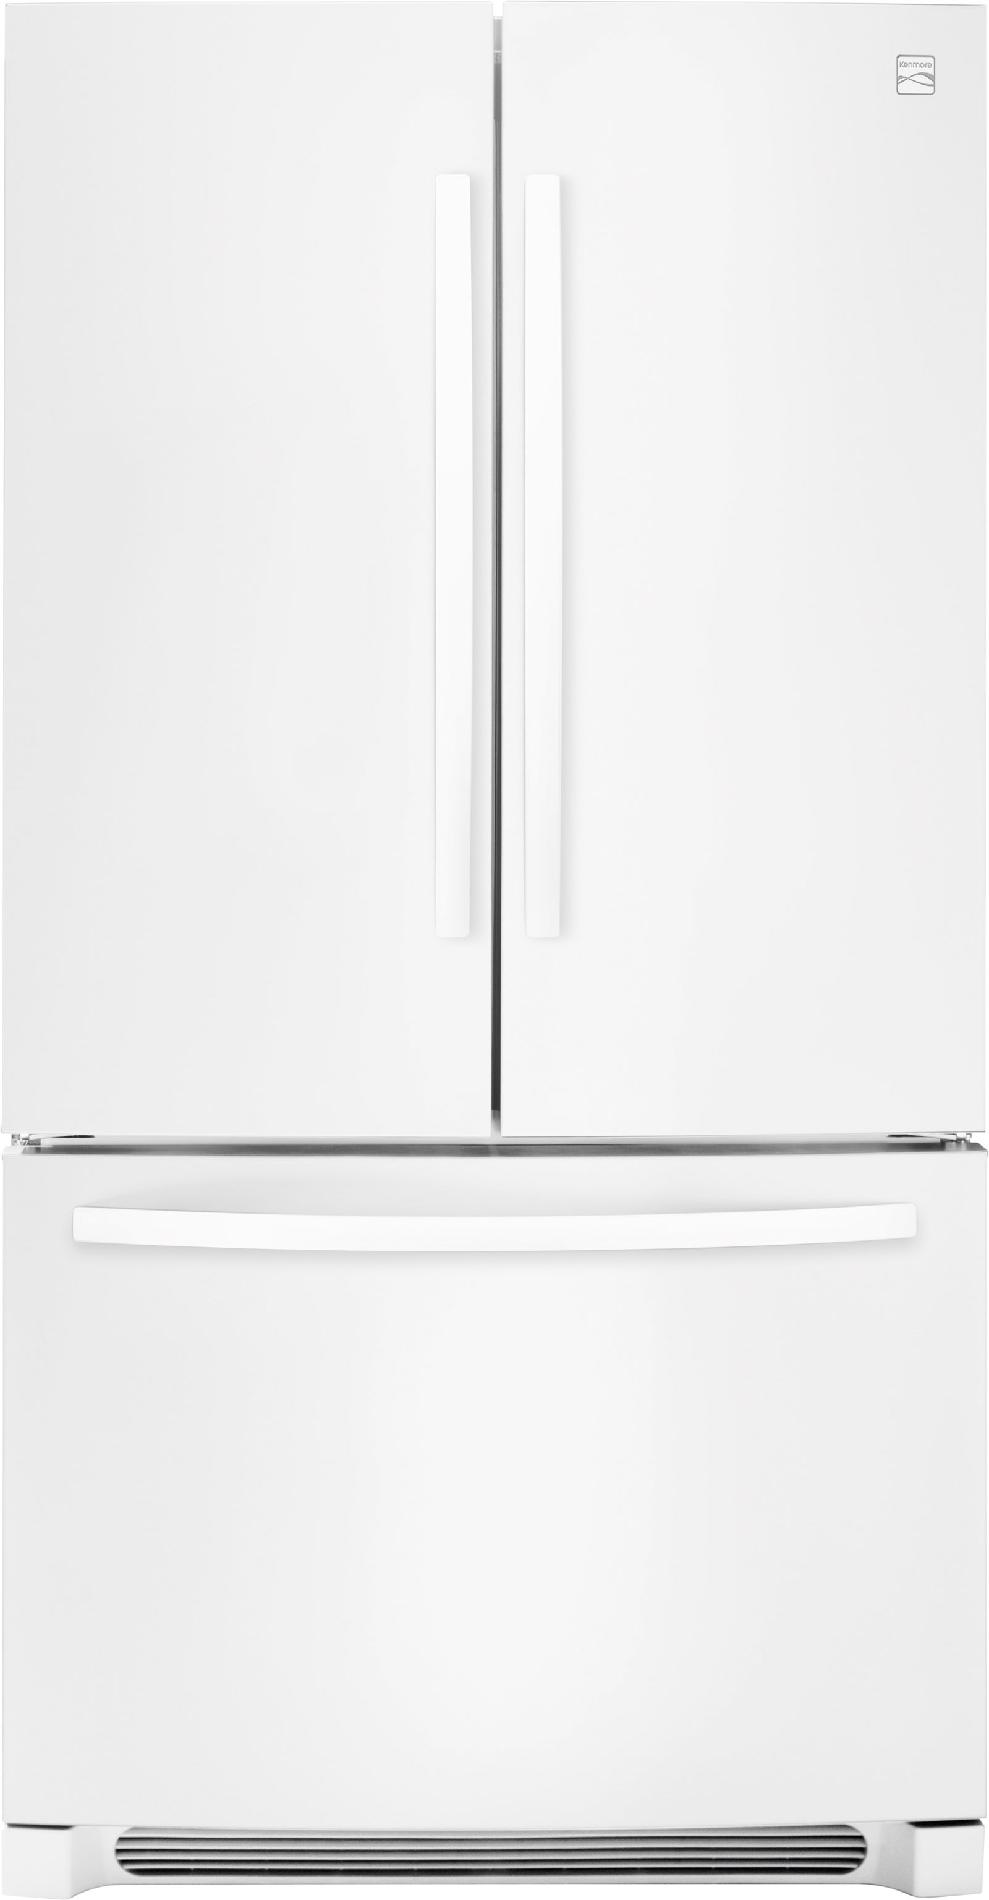 70412-27-6-cu-ft-French-Door-Refrigerator-White